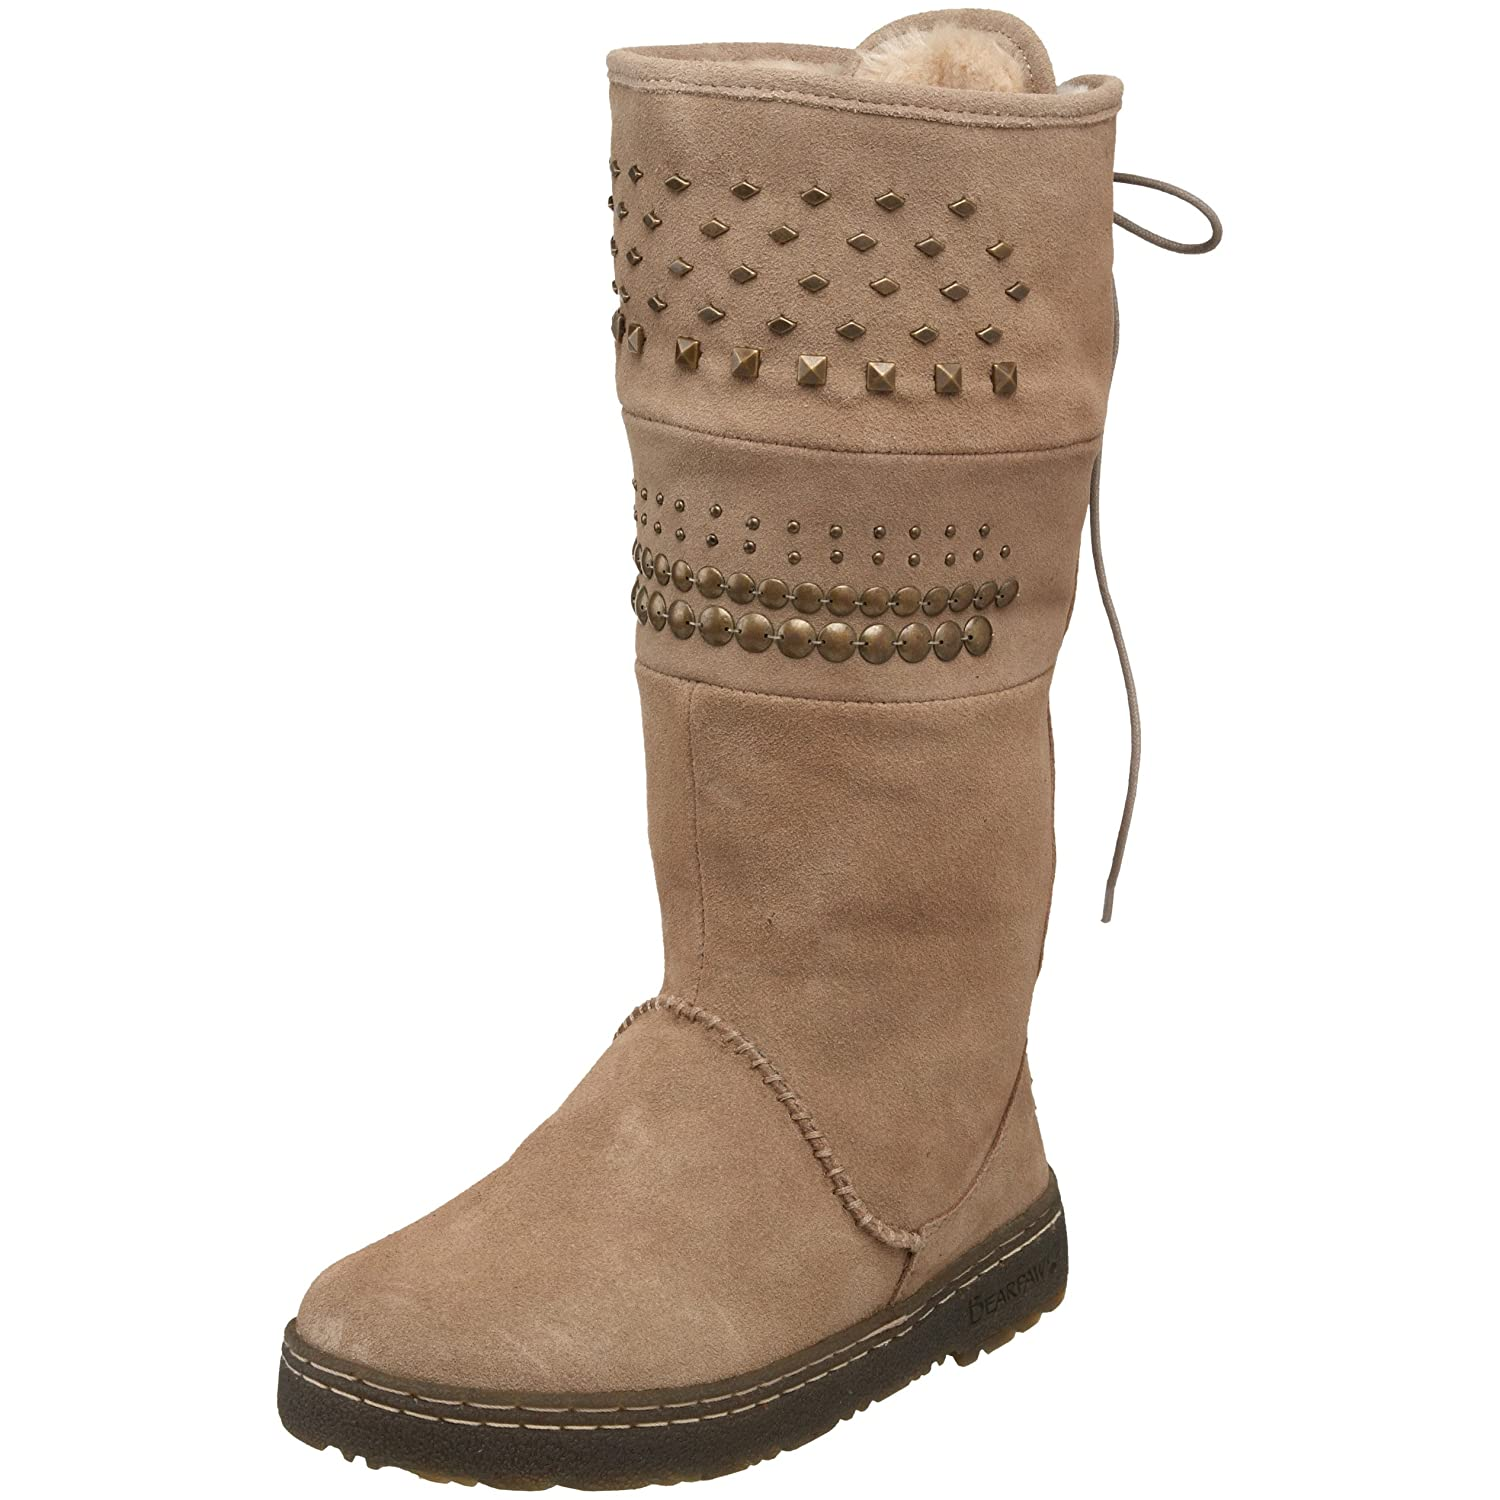 f95a69df49 I love boots thread! [Archive] - Baby Bargains & Baby 411 Community